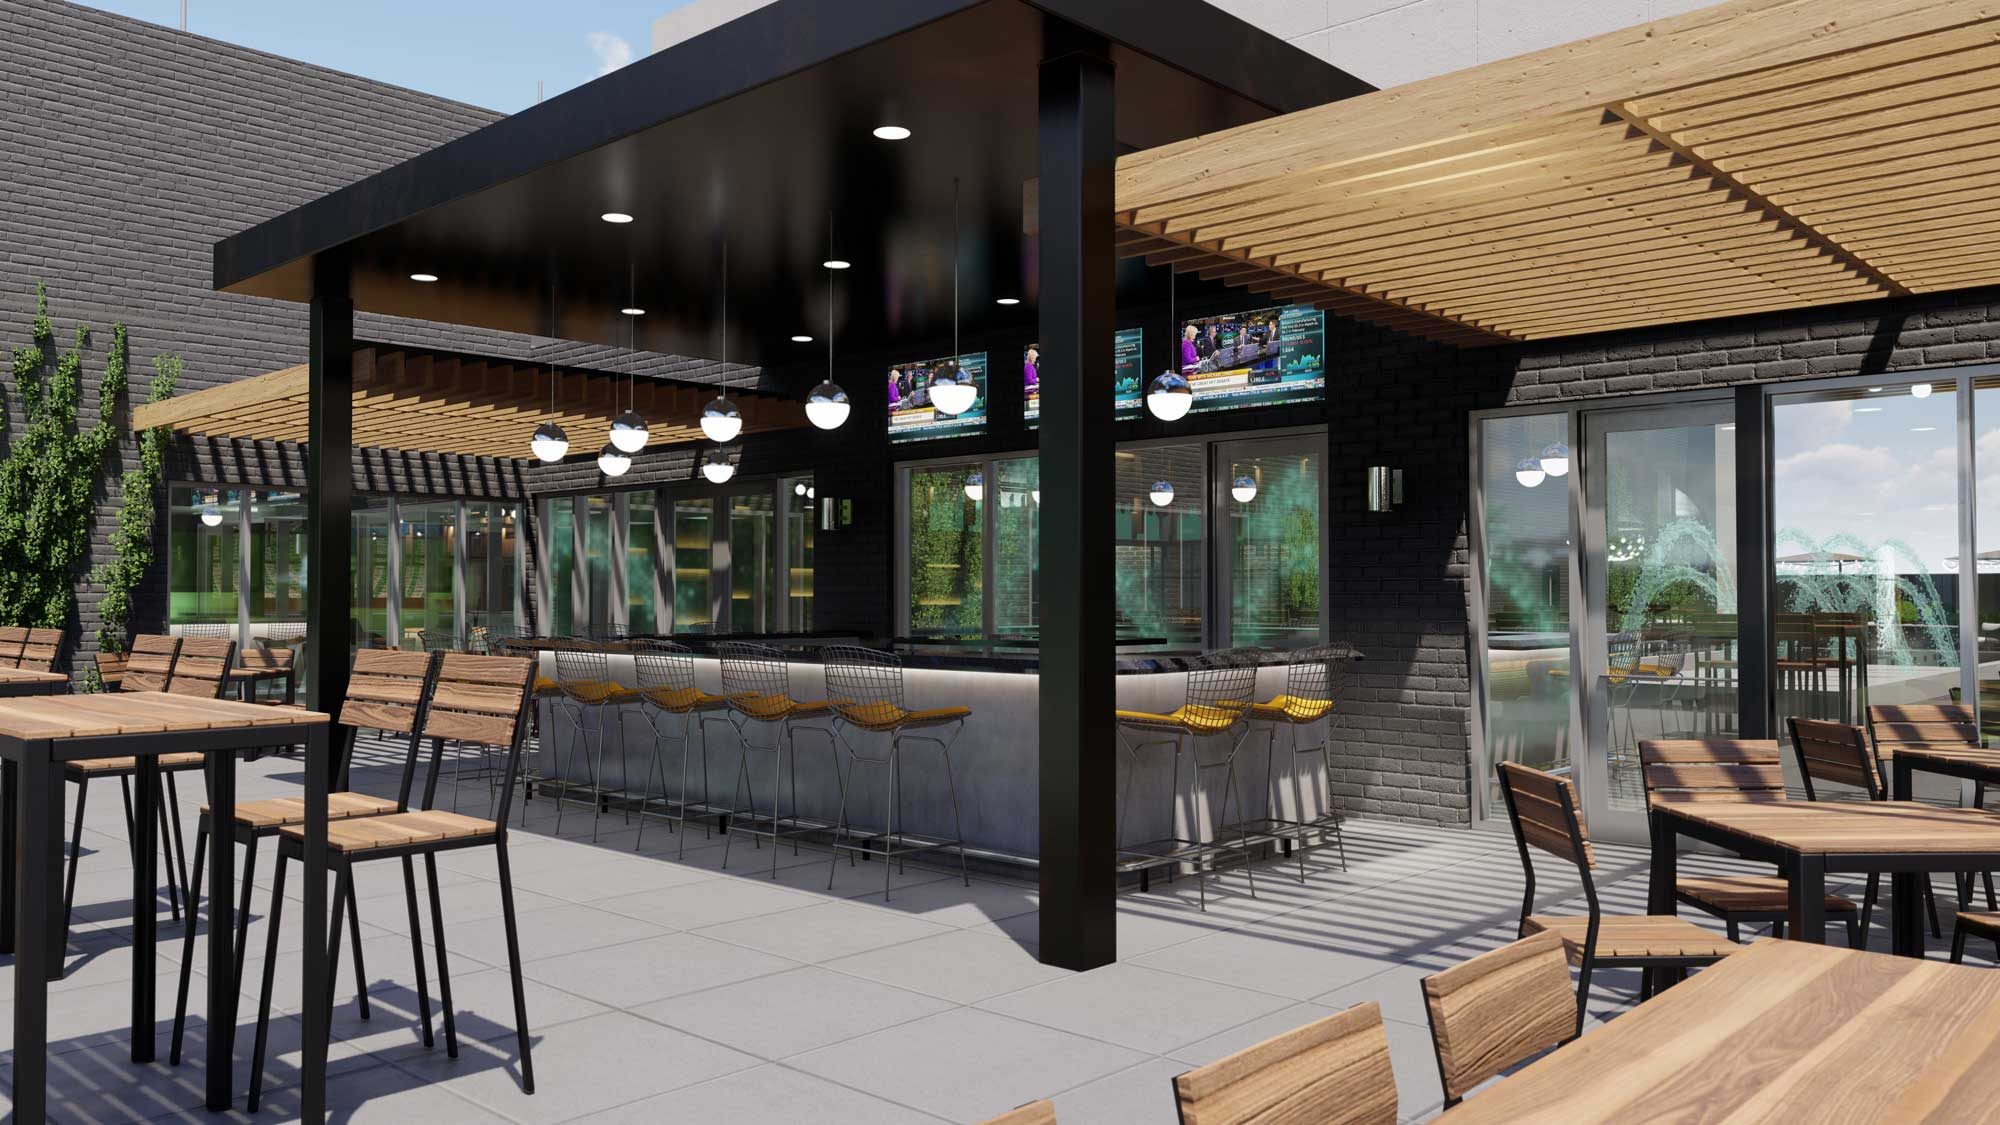 Cambria Hotel Detroit rooftop bar rendering